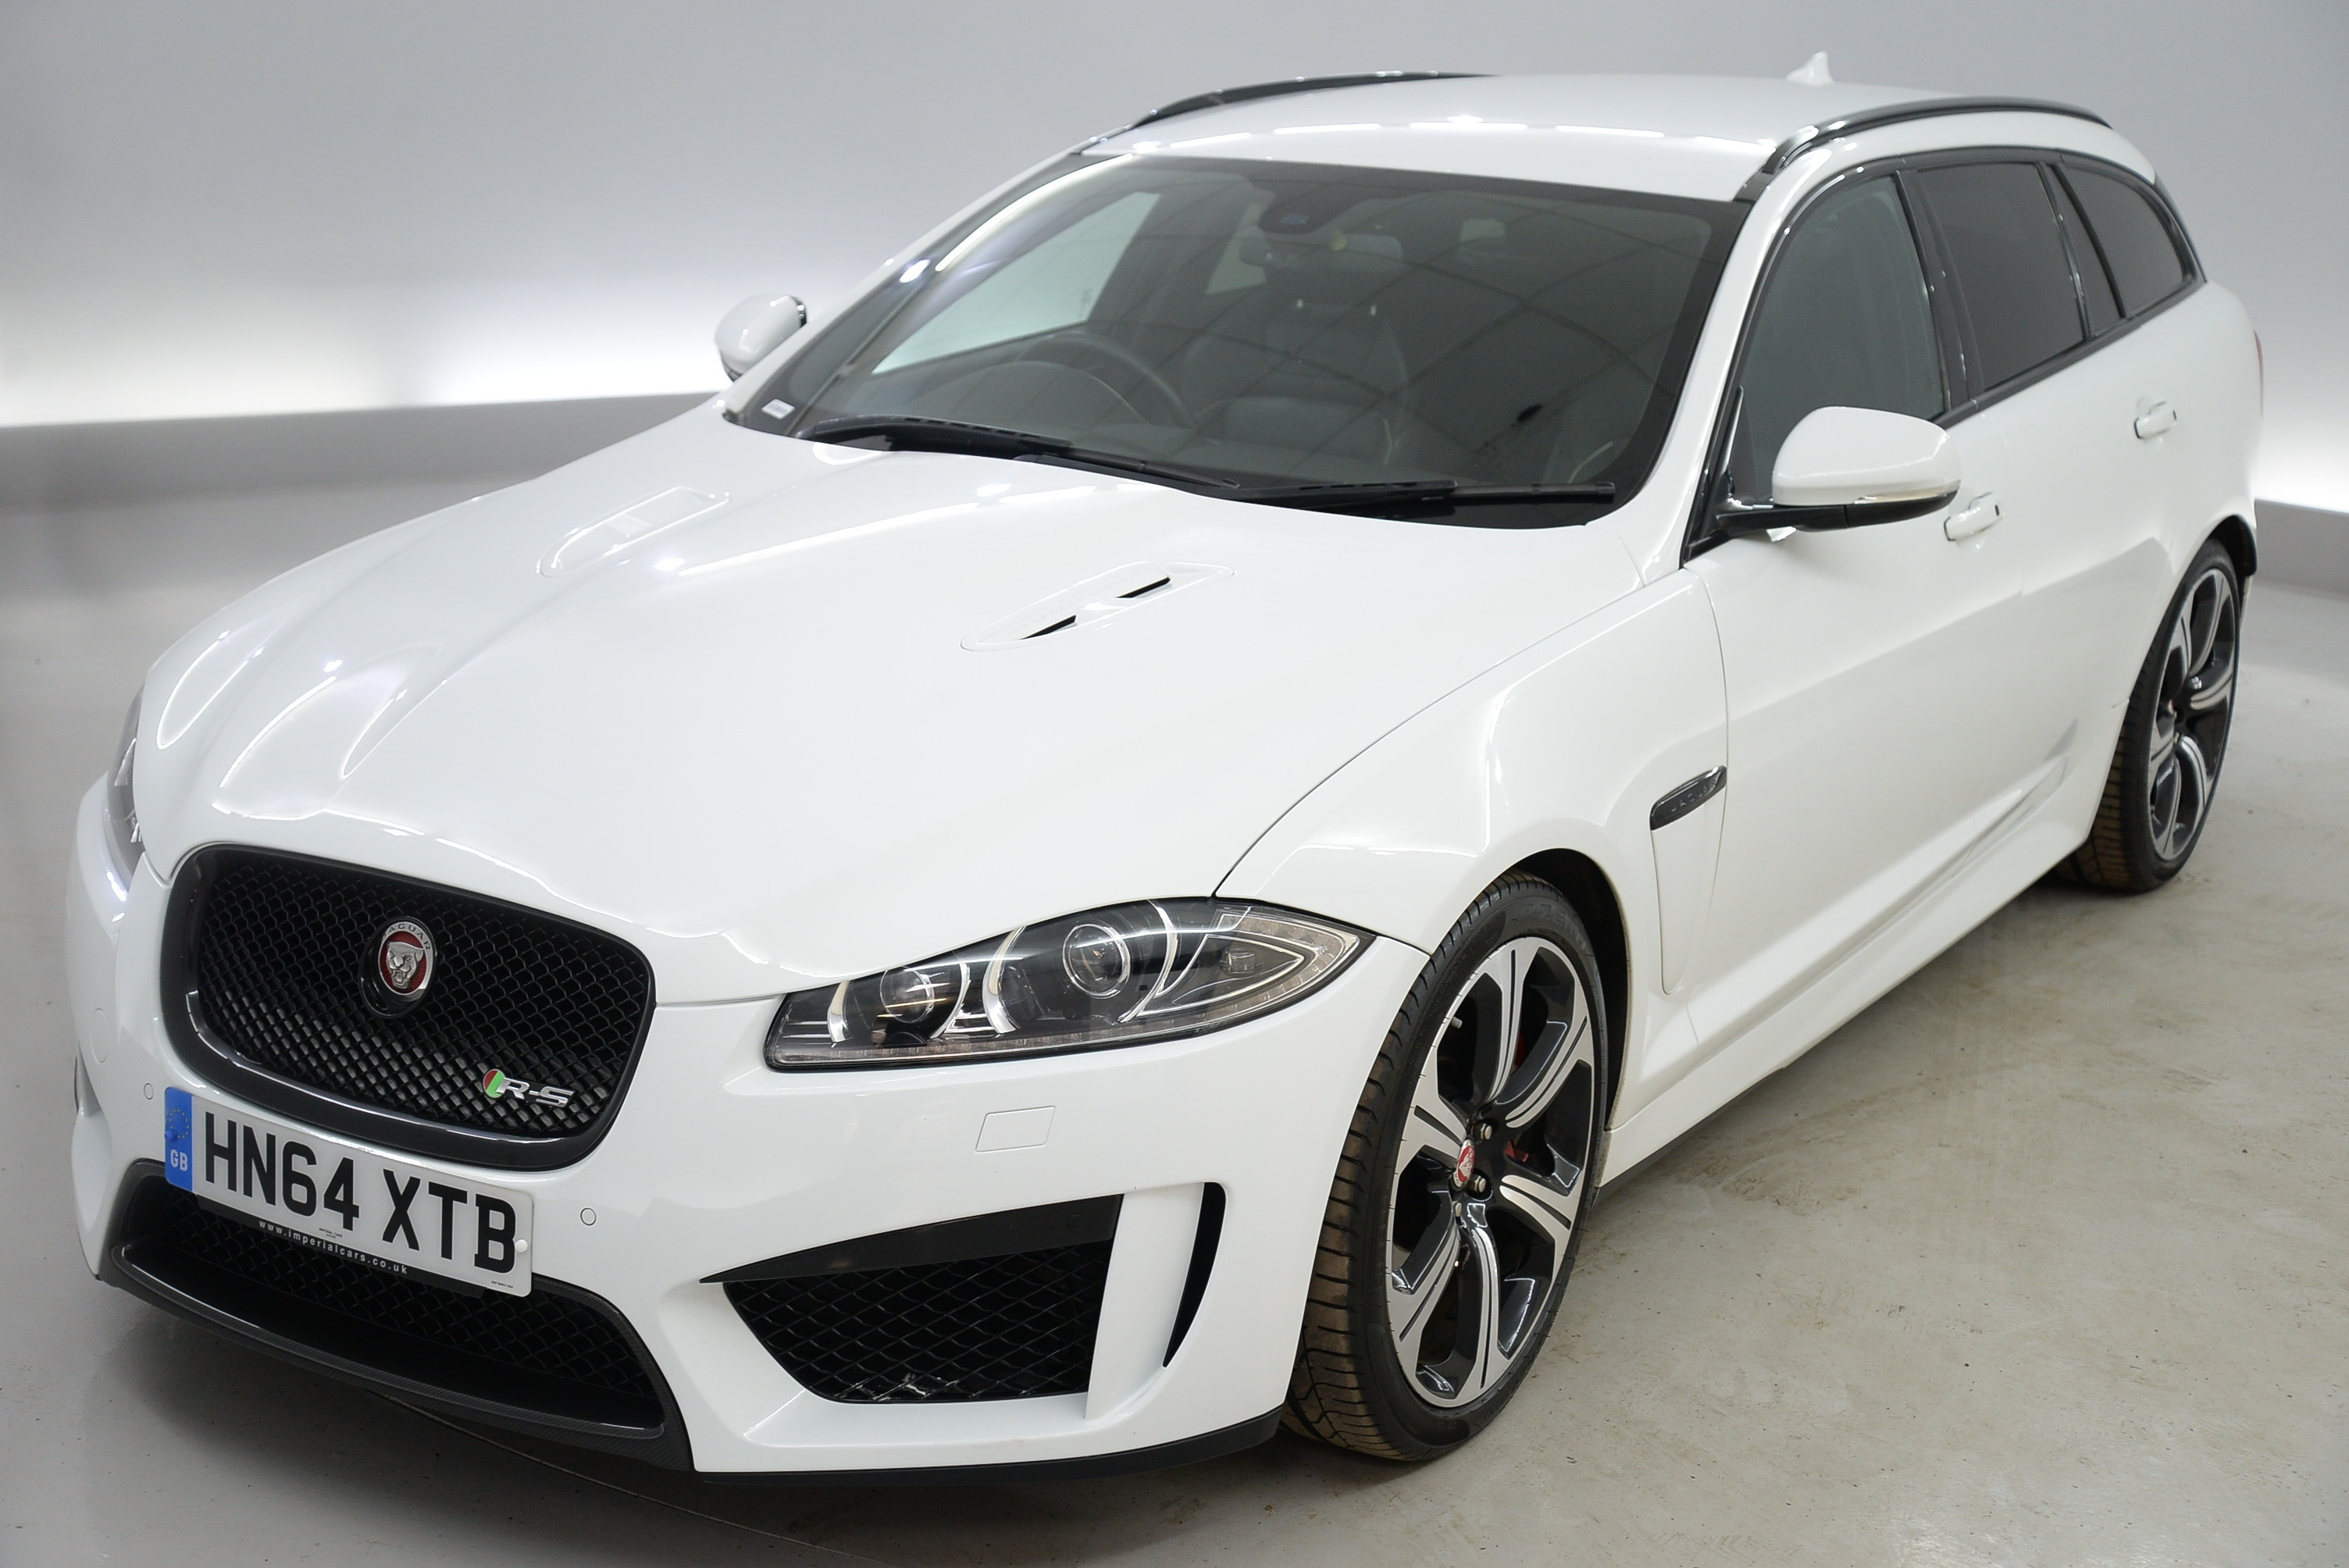 for speed sale cars used supercharged jaguar top xf